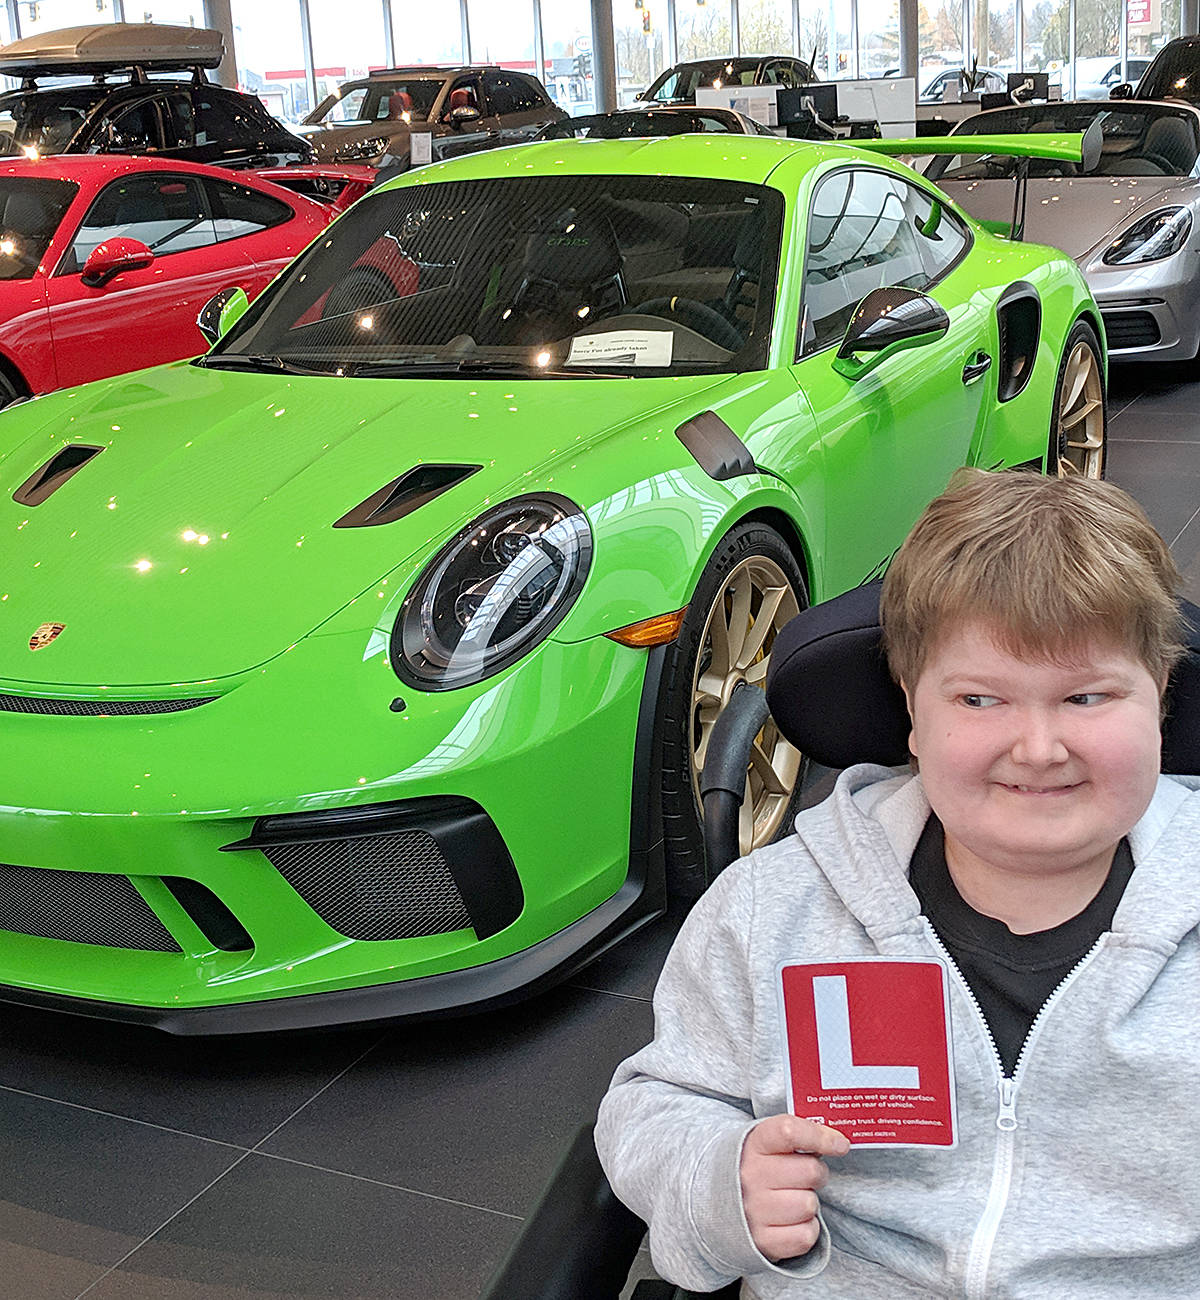 Doug Penner now has his learners, but can't get behind the wheel until he can be trained and tested in an adapted and accessible vehicle. He'd love if that could be a sports car – although it's unclear yet if that will be practical. (Cam Penner photo)